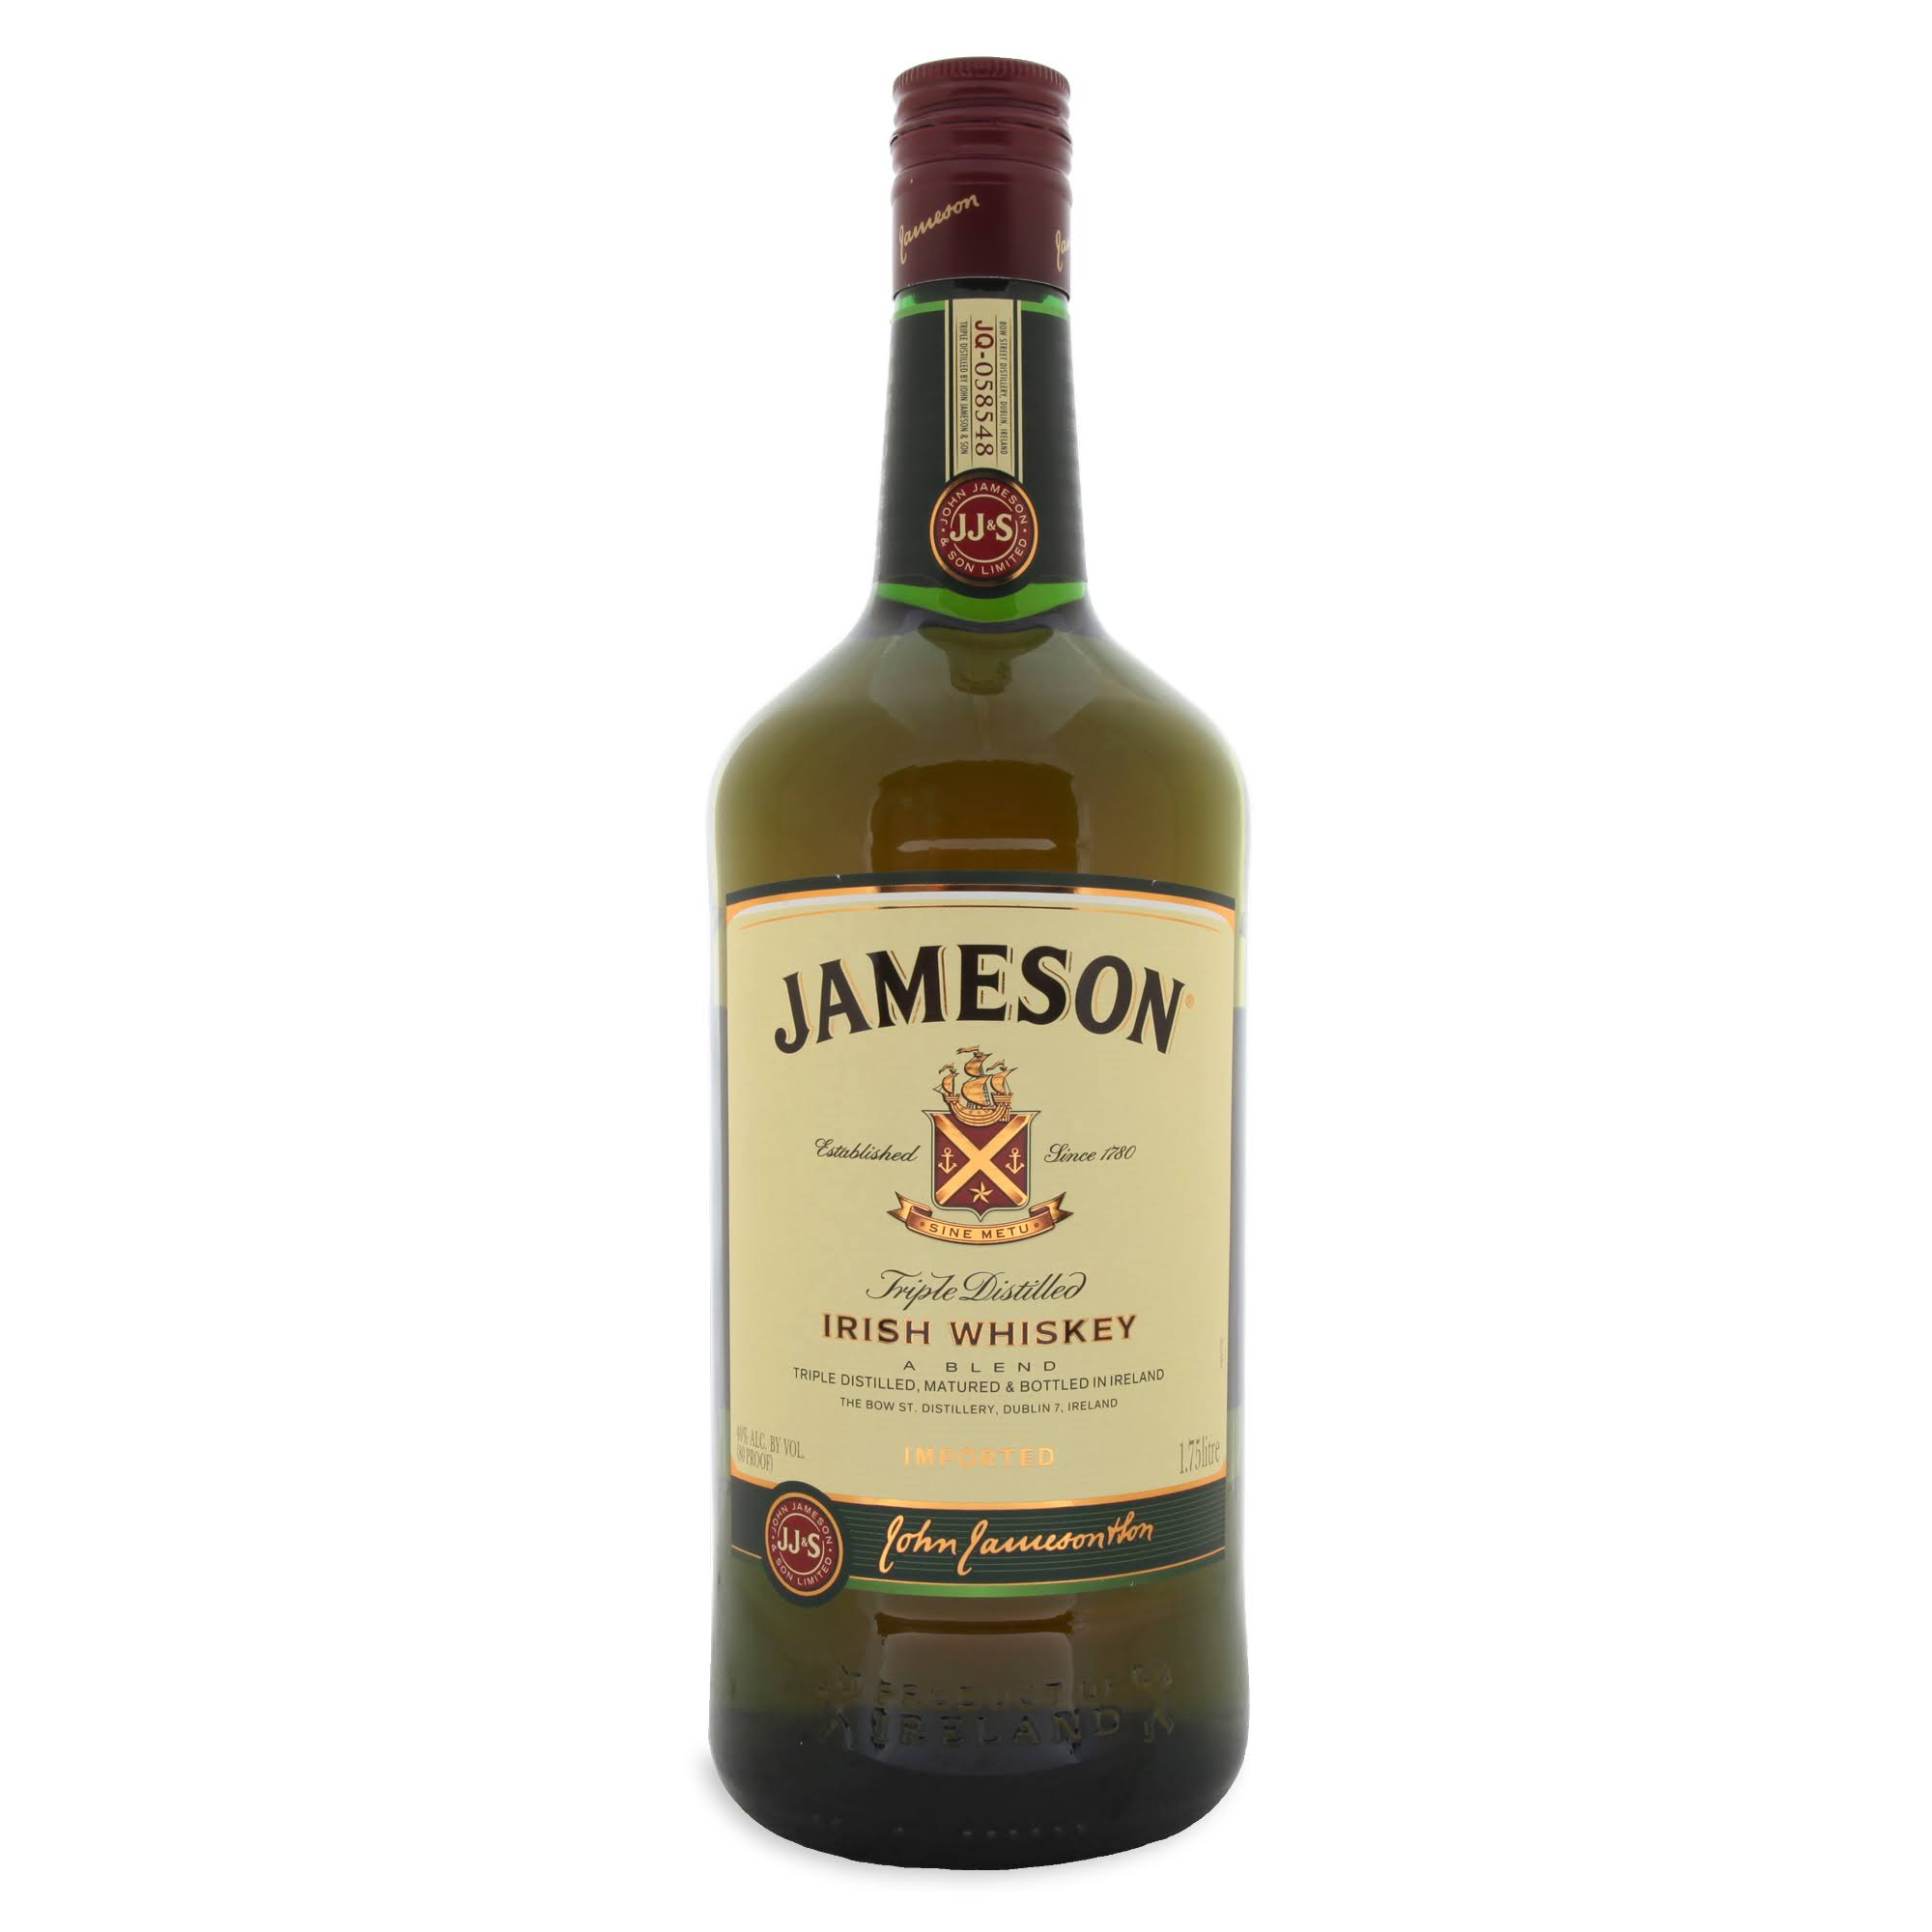 Jameson Irish Whiskey 1.75 L